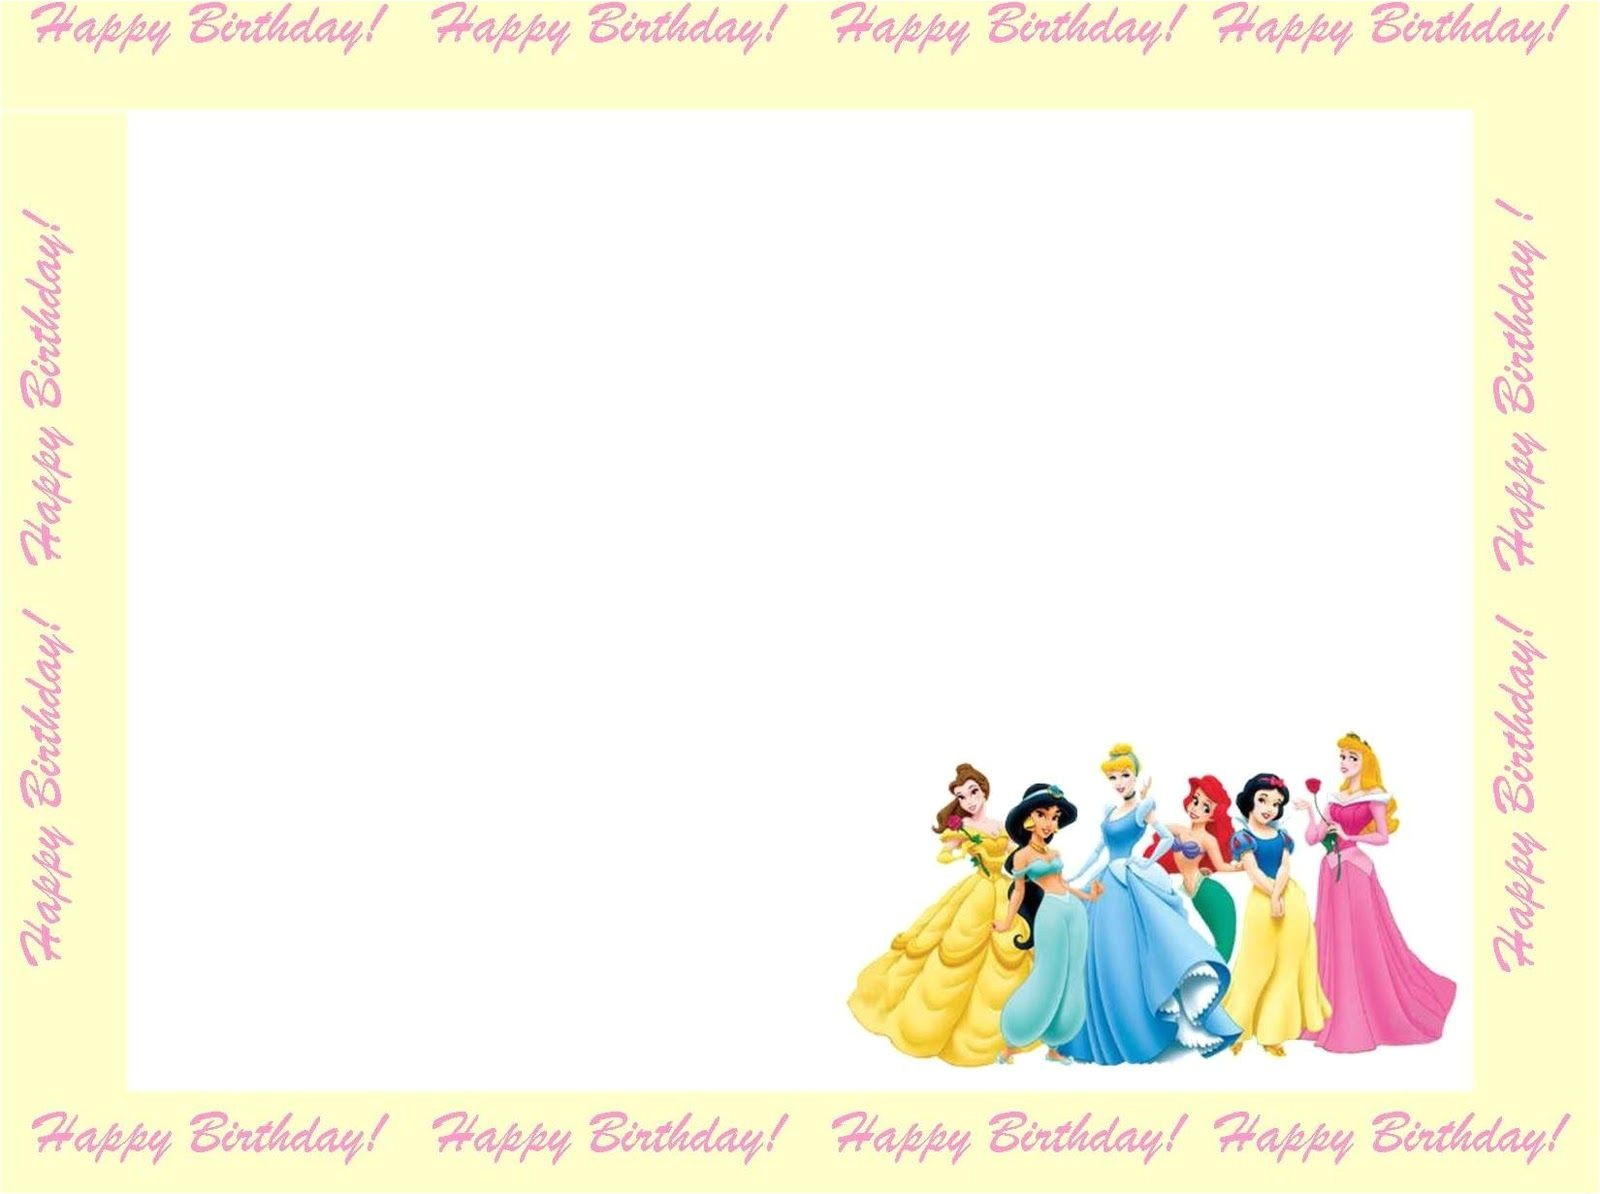 Disney Princess Birthday Invitation Templates Free 6 Free Borders for Birthday Invitations